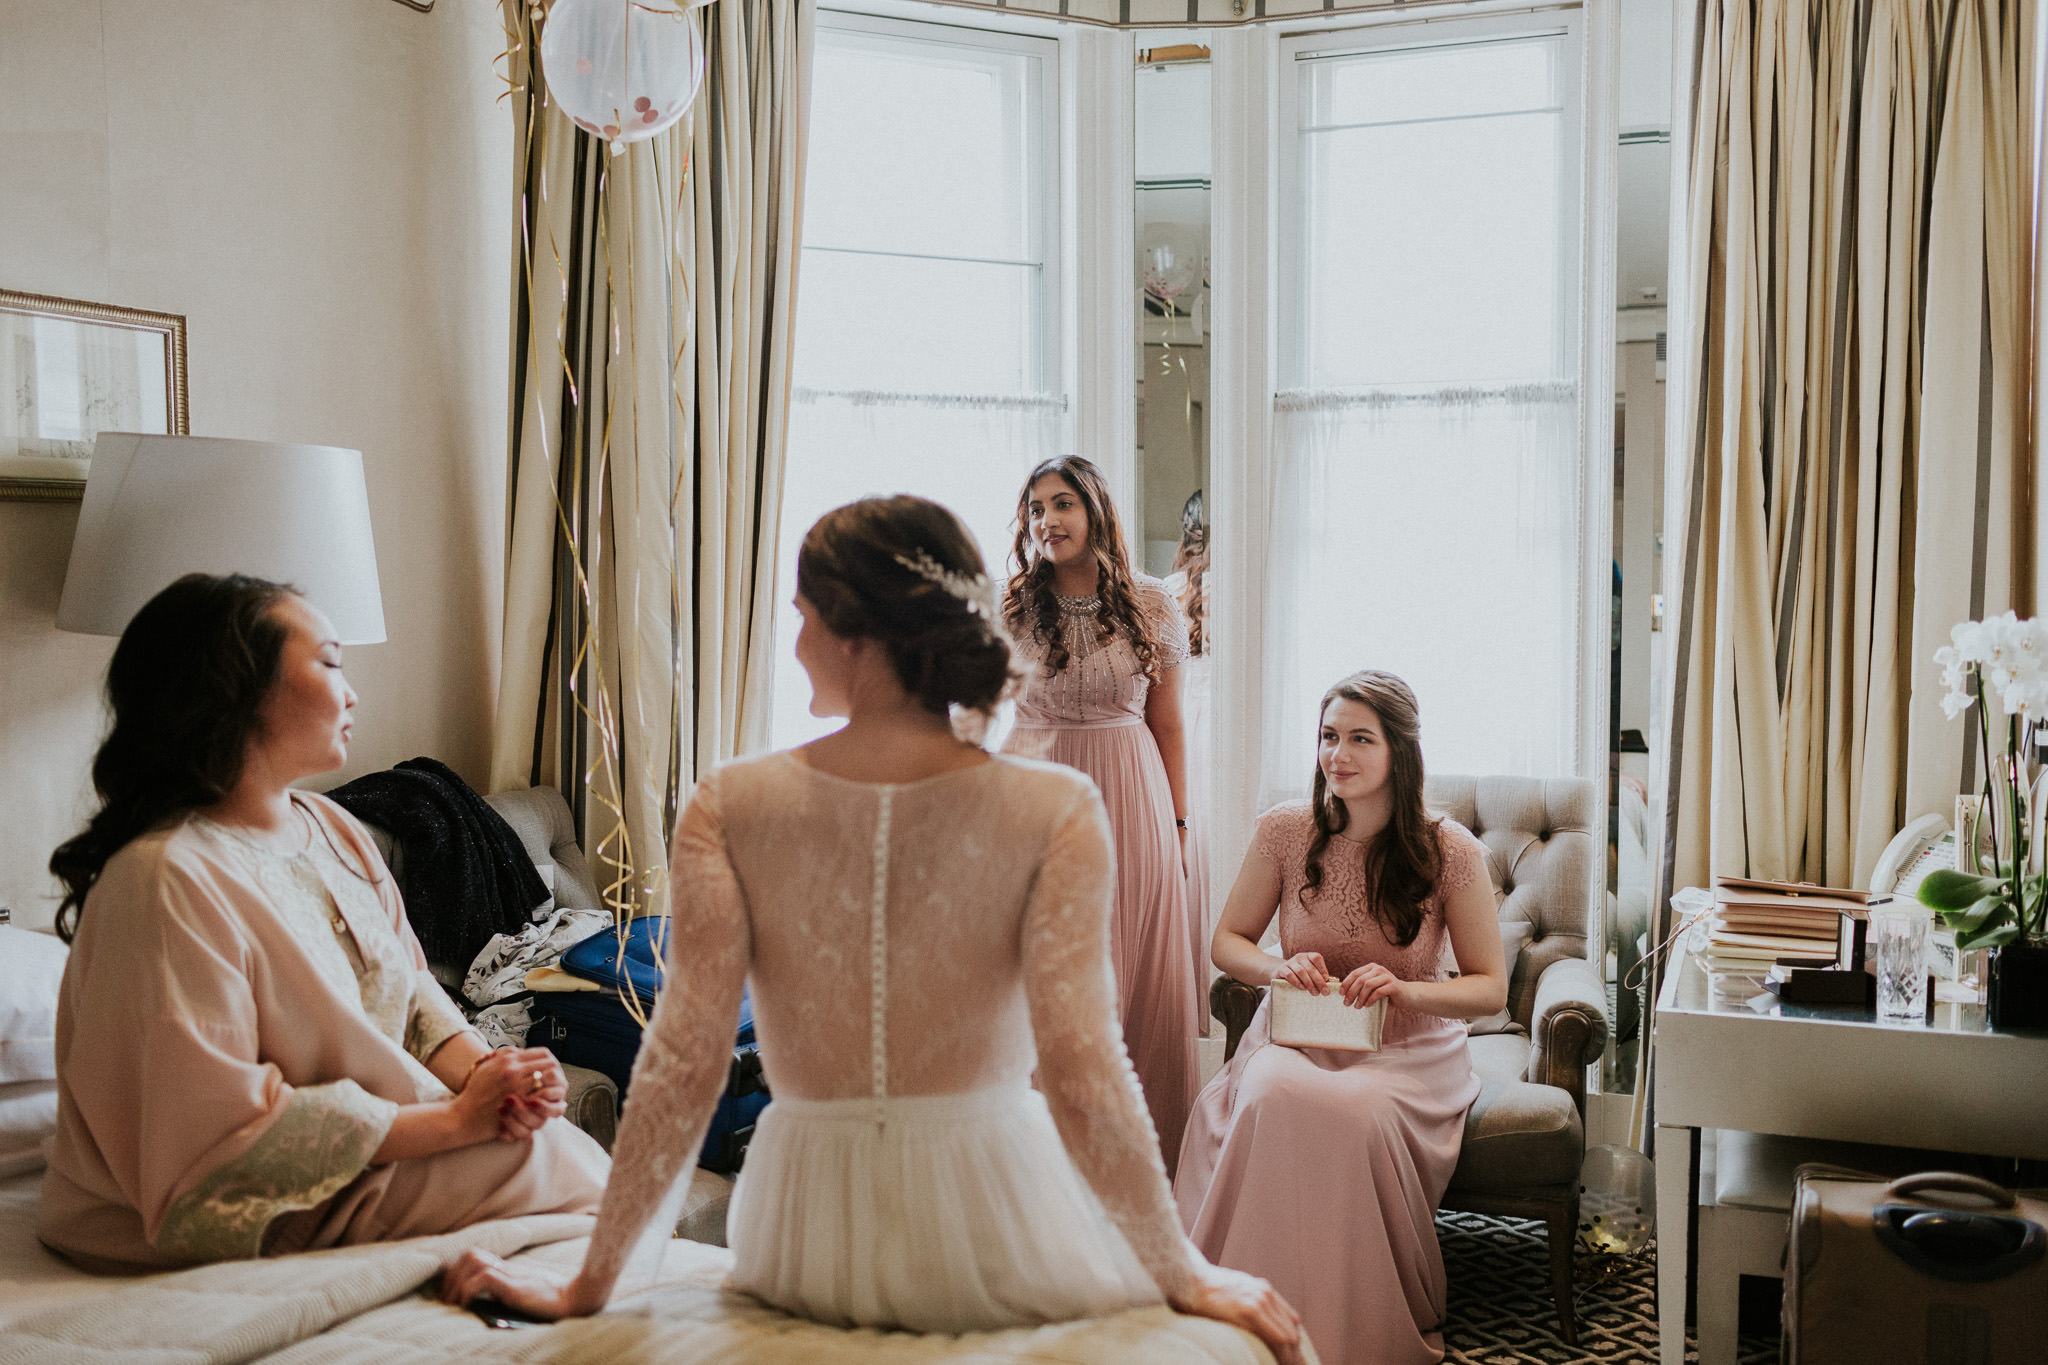 Bride getting ready for the wedding with her bridesmaids